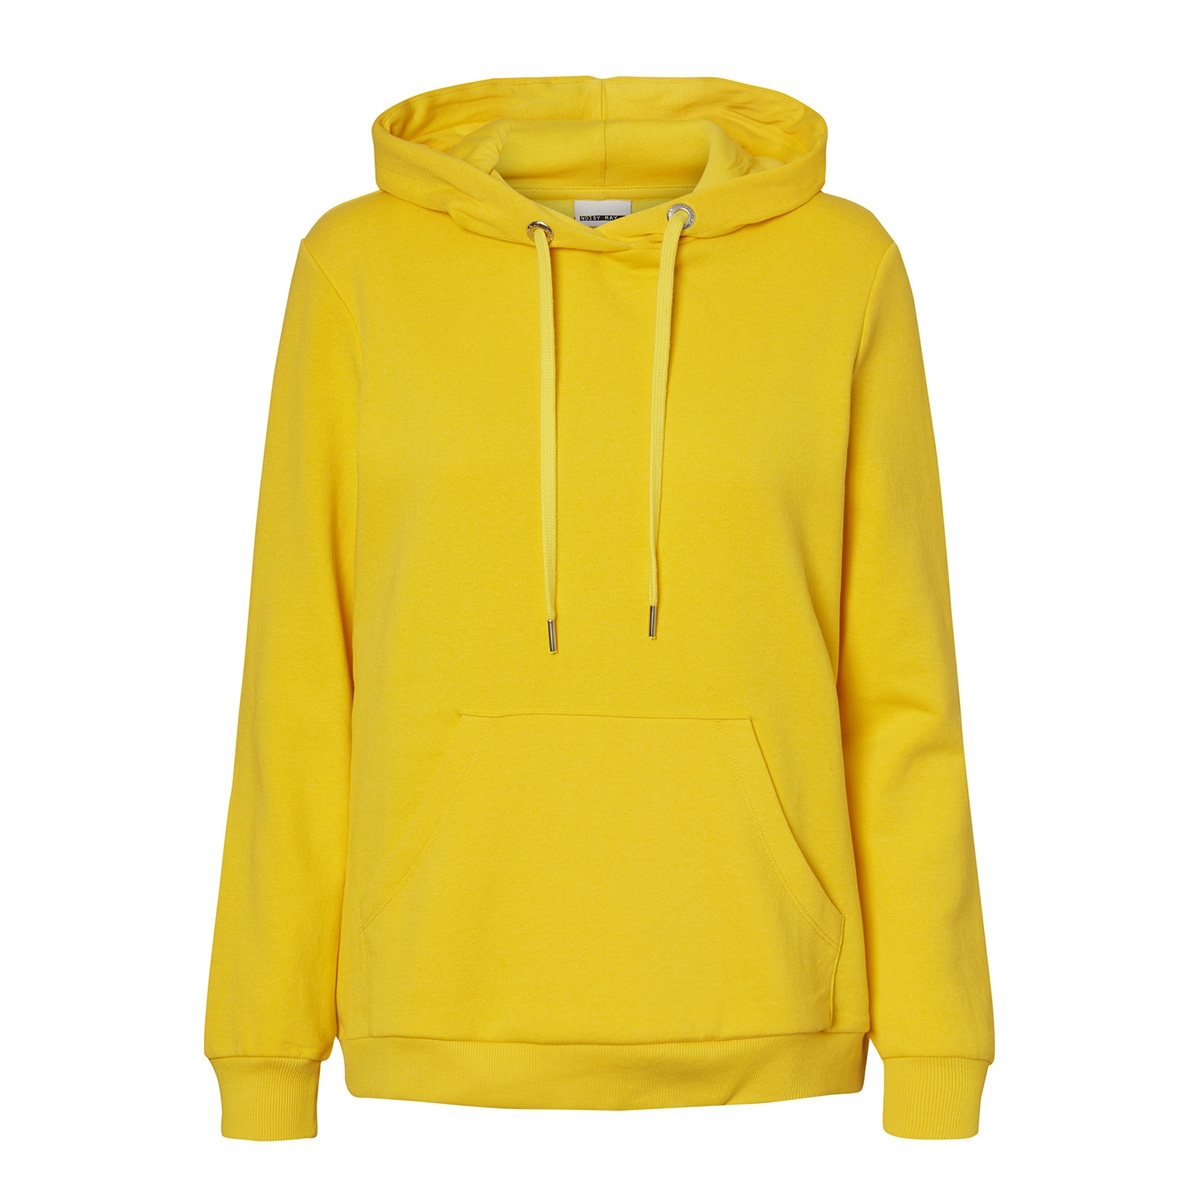 nmper l/s hoodie x1 27006355 noisy may sweater lemon chrome